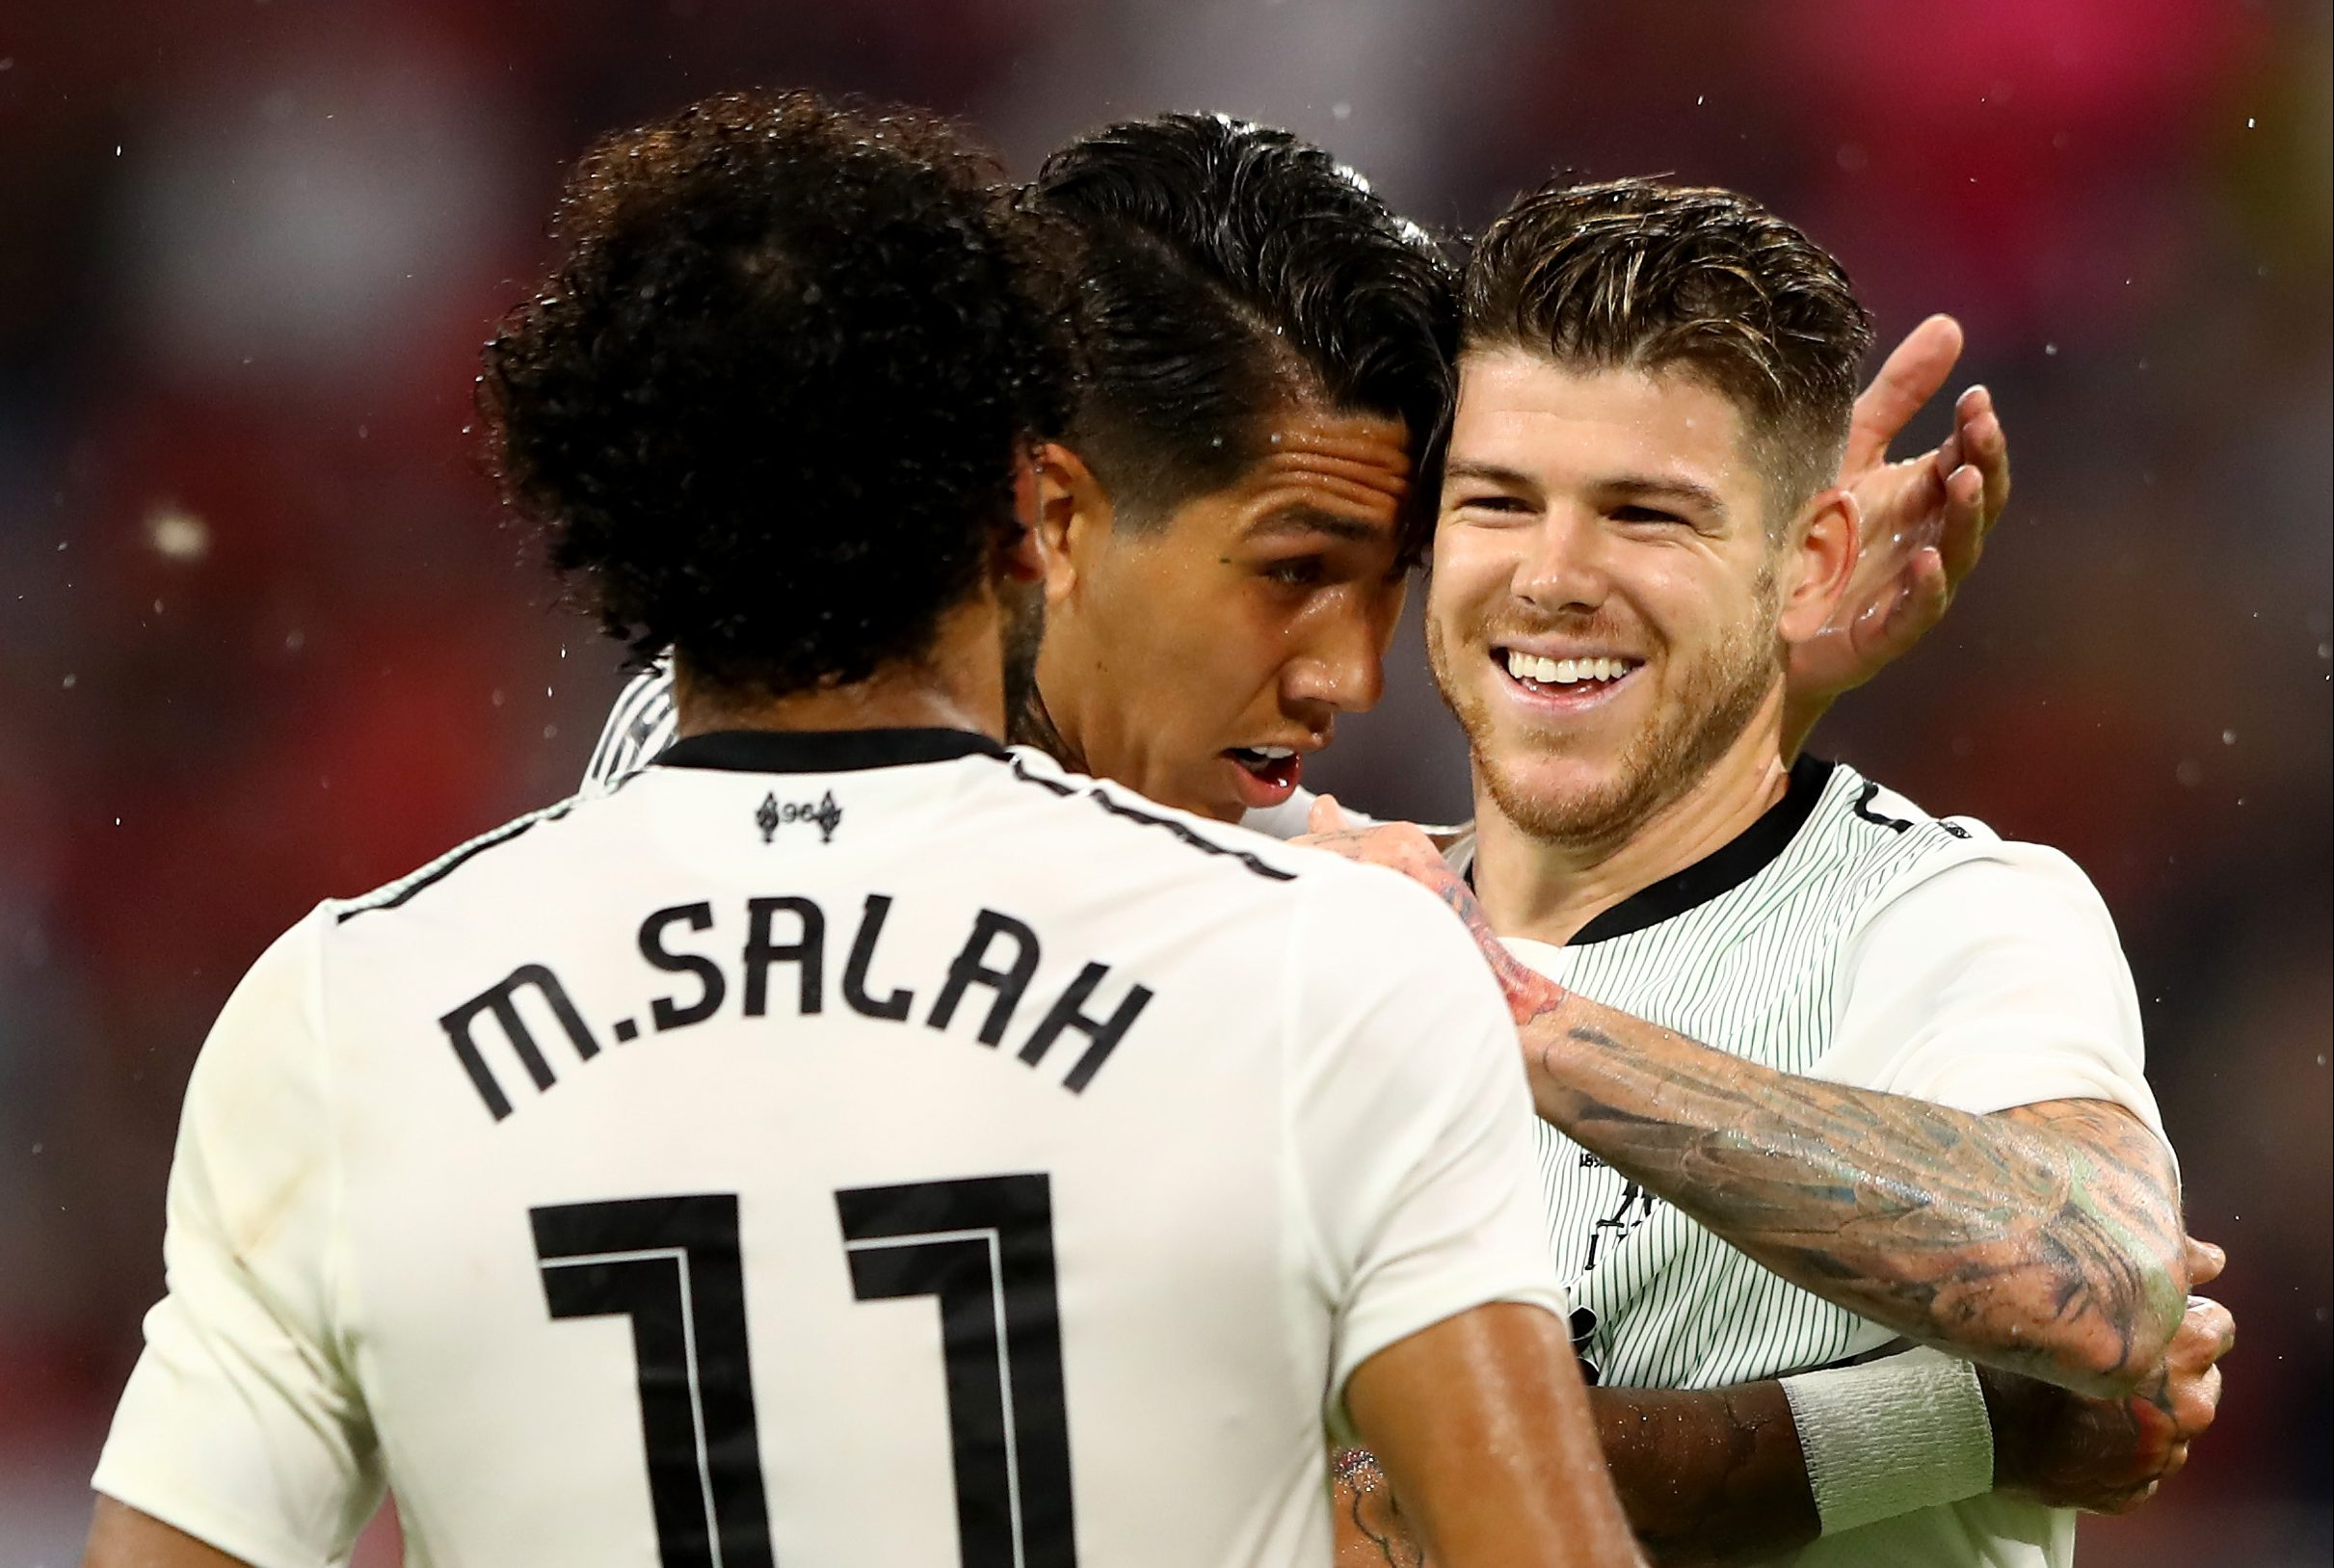 Liverpool fans hail 'new signing' Alberto Moreno after superb performance against Bayern Munich